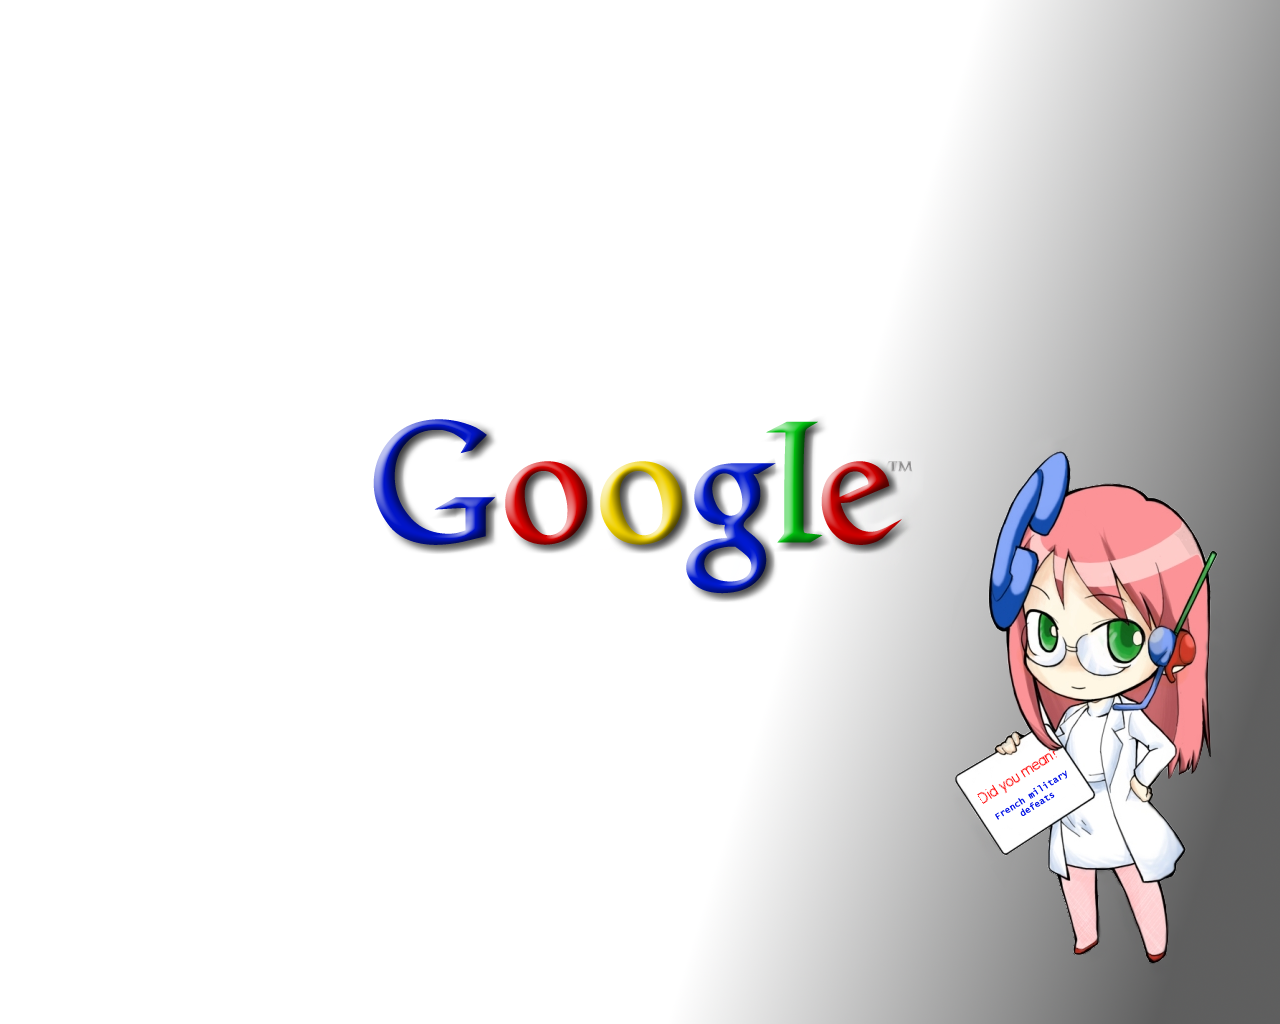 Google Anime Wallpapers - WallpaperSafari